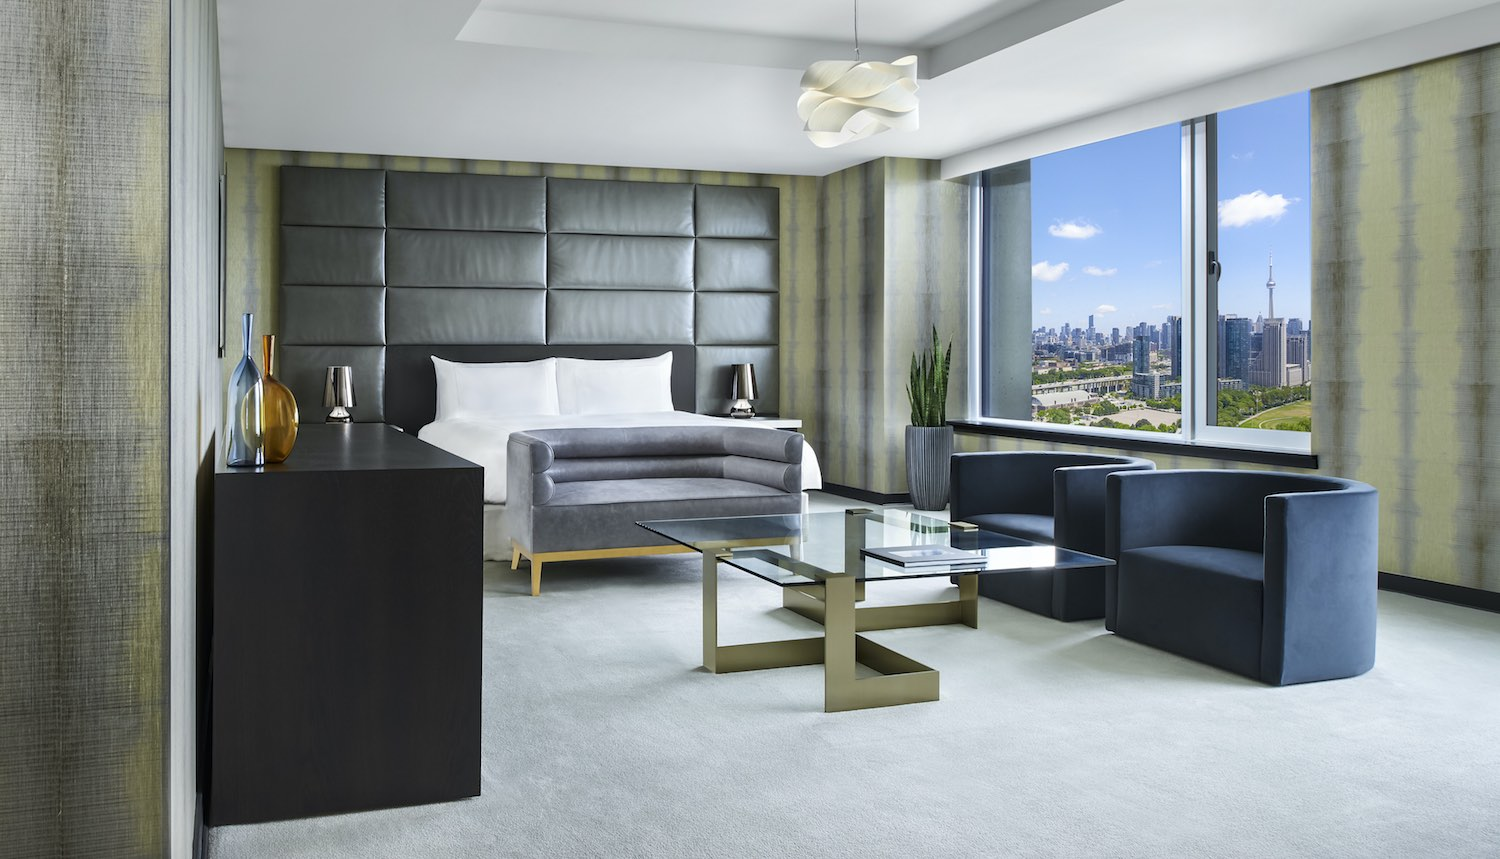 Hotel x deluxe room with view over Toronto Skyline